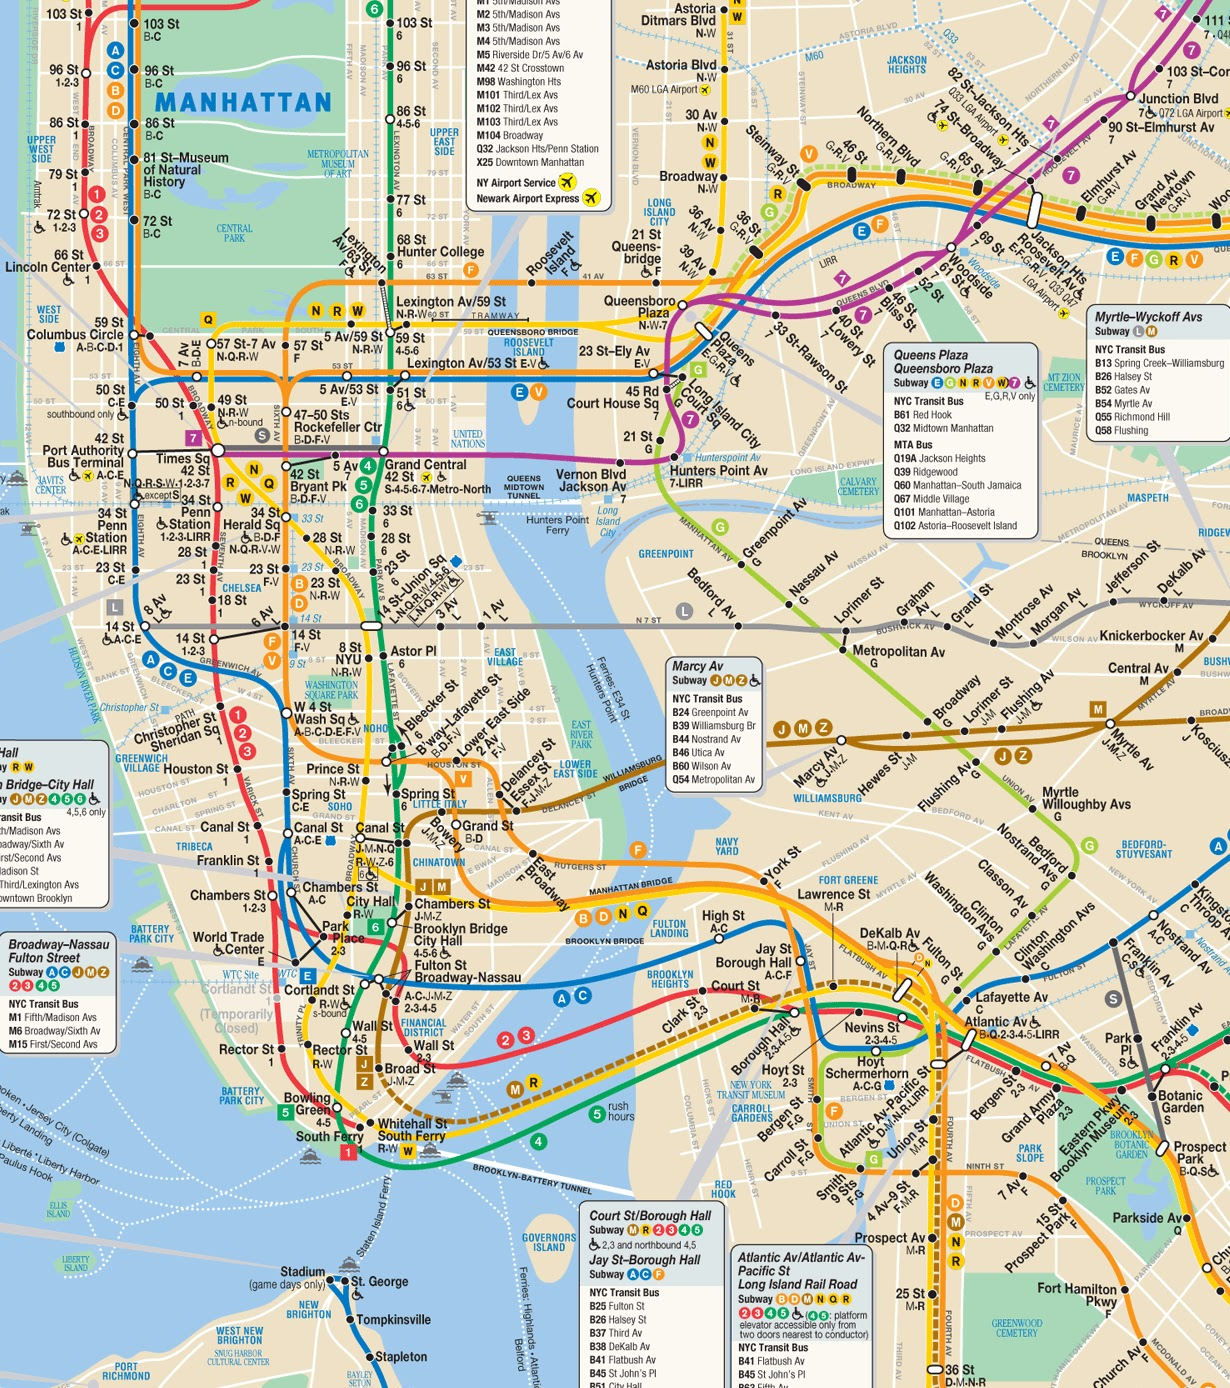 Diagram Free Collection Nyu Location Map Millions Ideas Diagram - Nyc city map portal